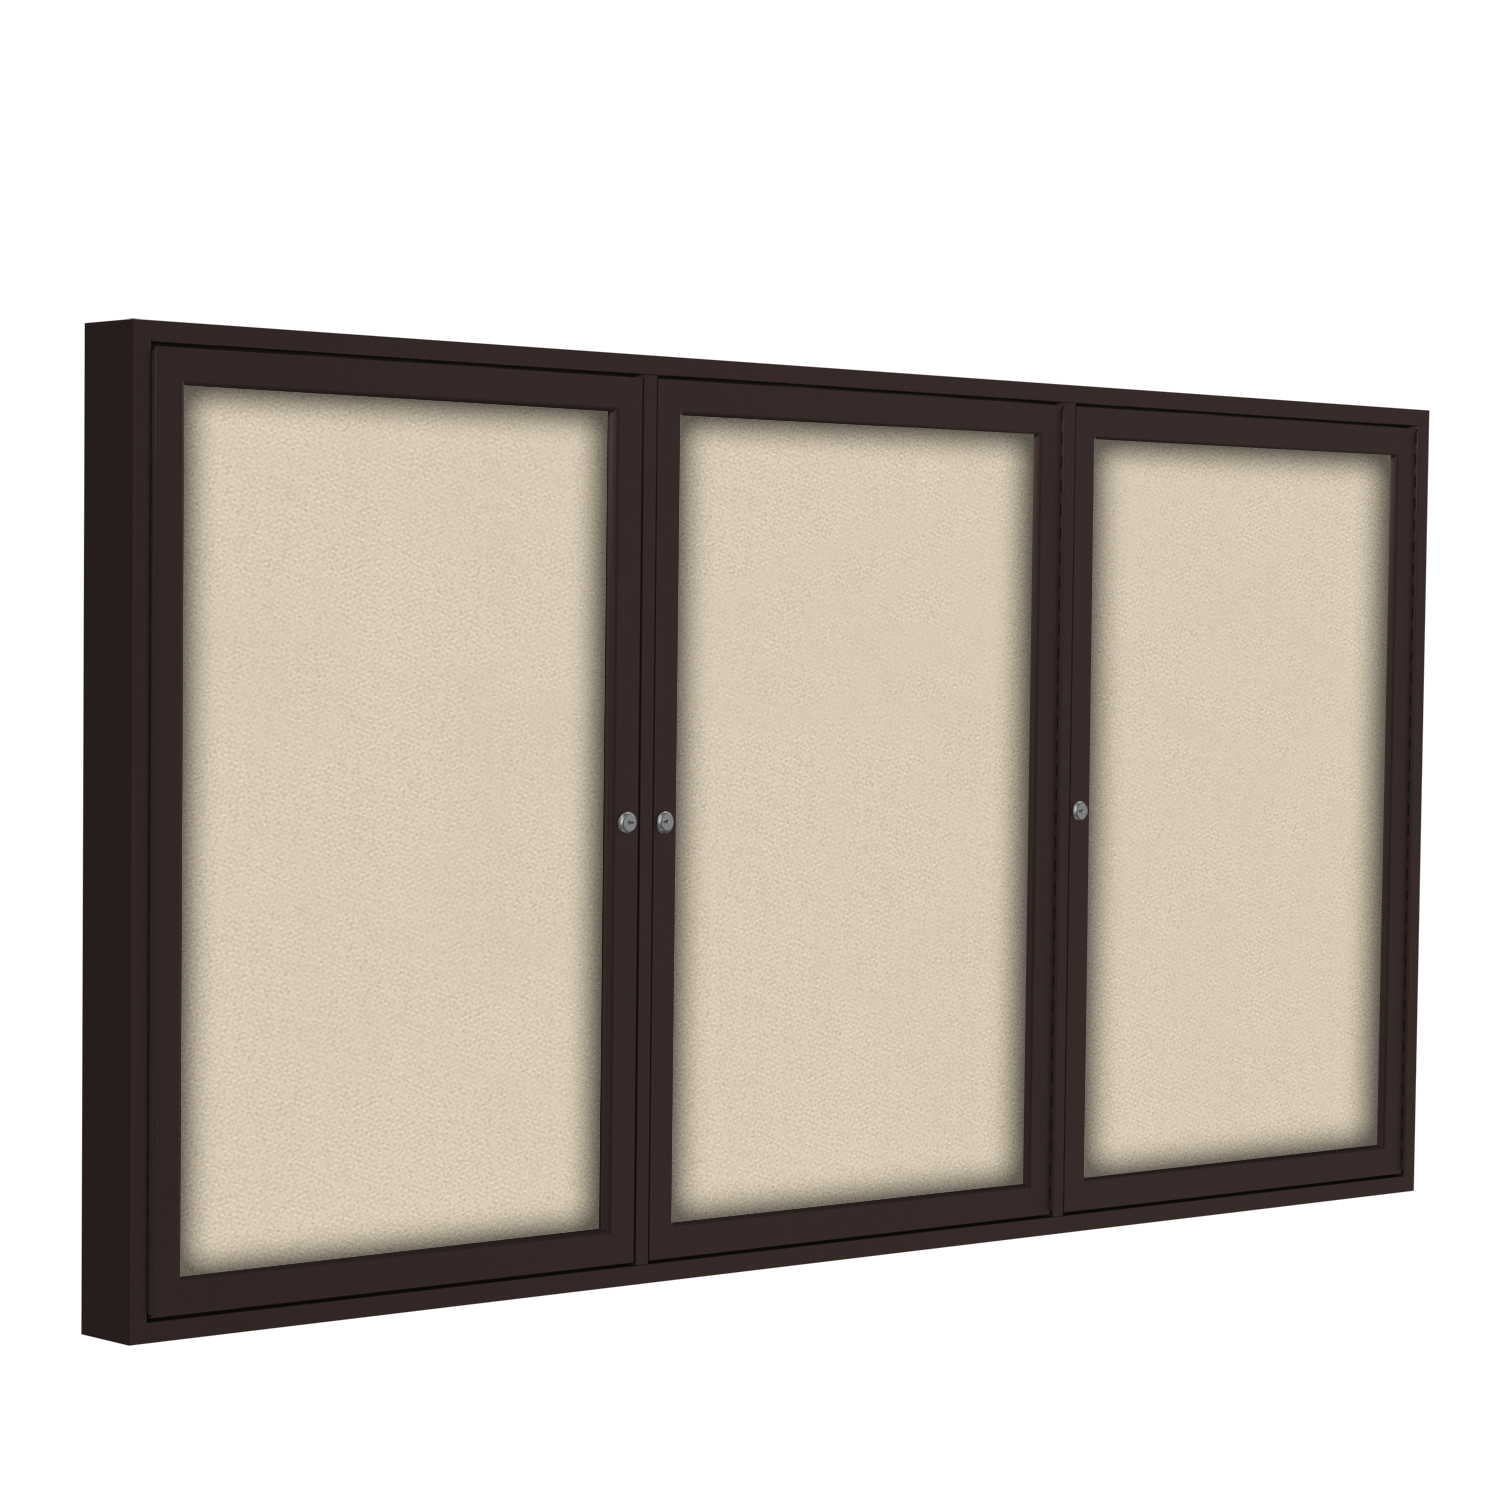 PB33672F-90 Ghent 3 Door Enclosed Fabric Bulletin Boards with Bronze Frame Wall Mounted TackBoard, 3'H x 6'W, Beige